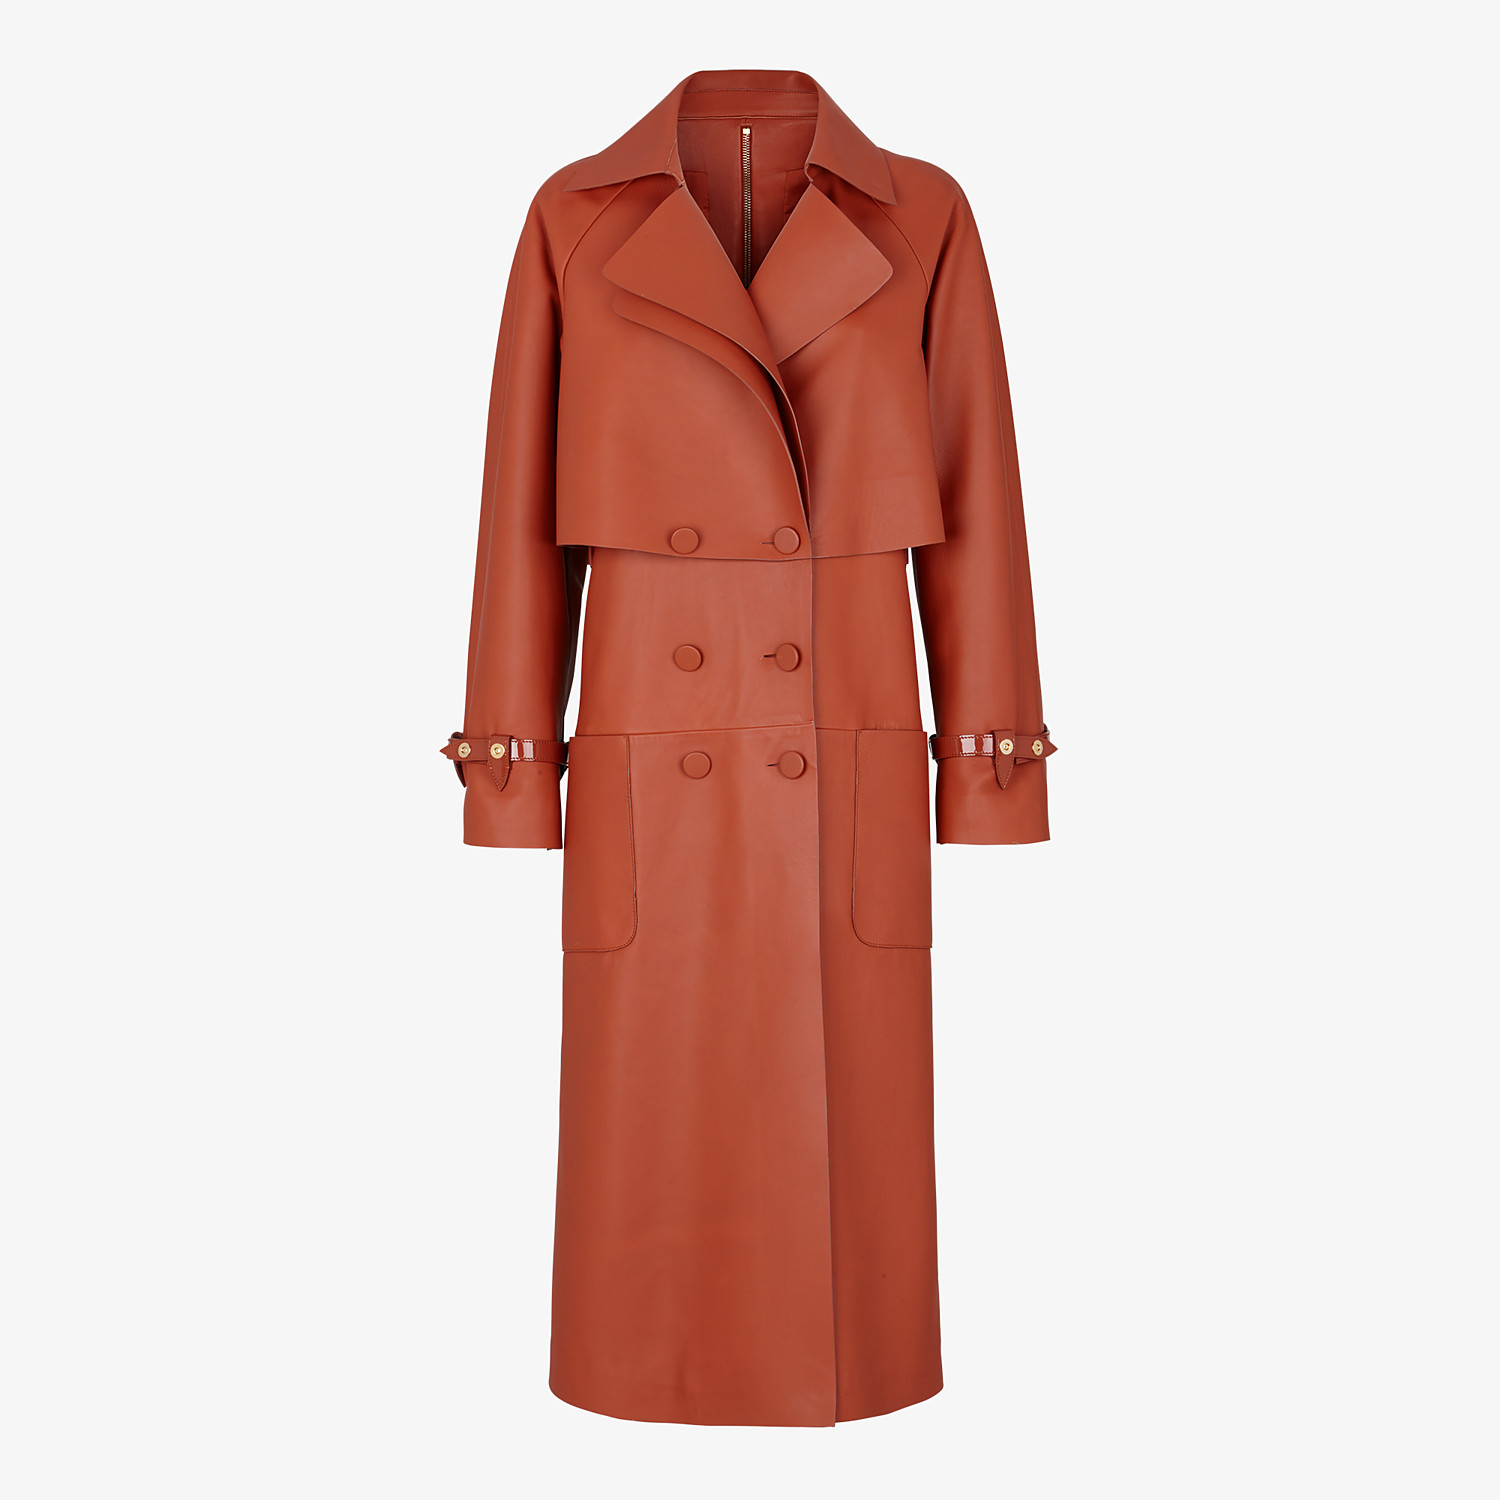 FENDI TRENCH COAT - Brown leather trench coat - view 1 detail